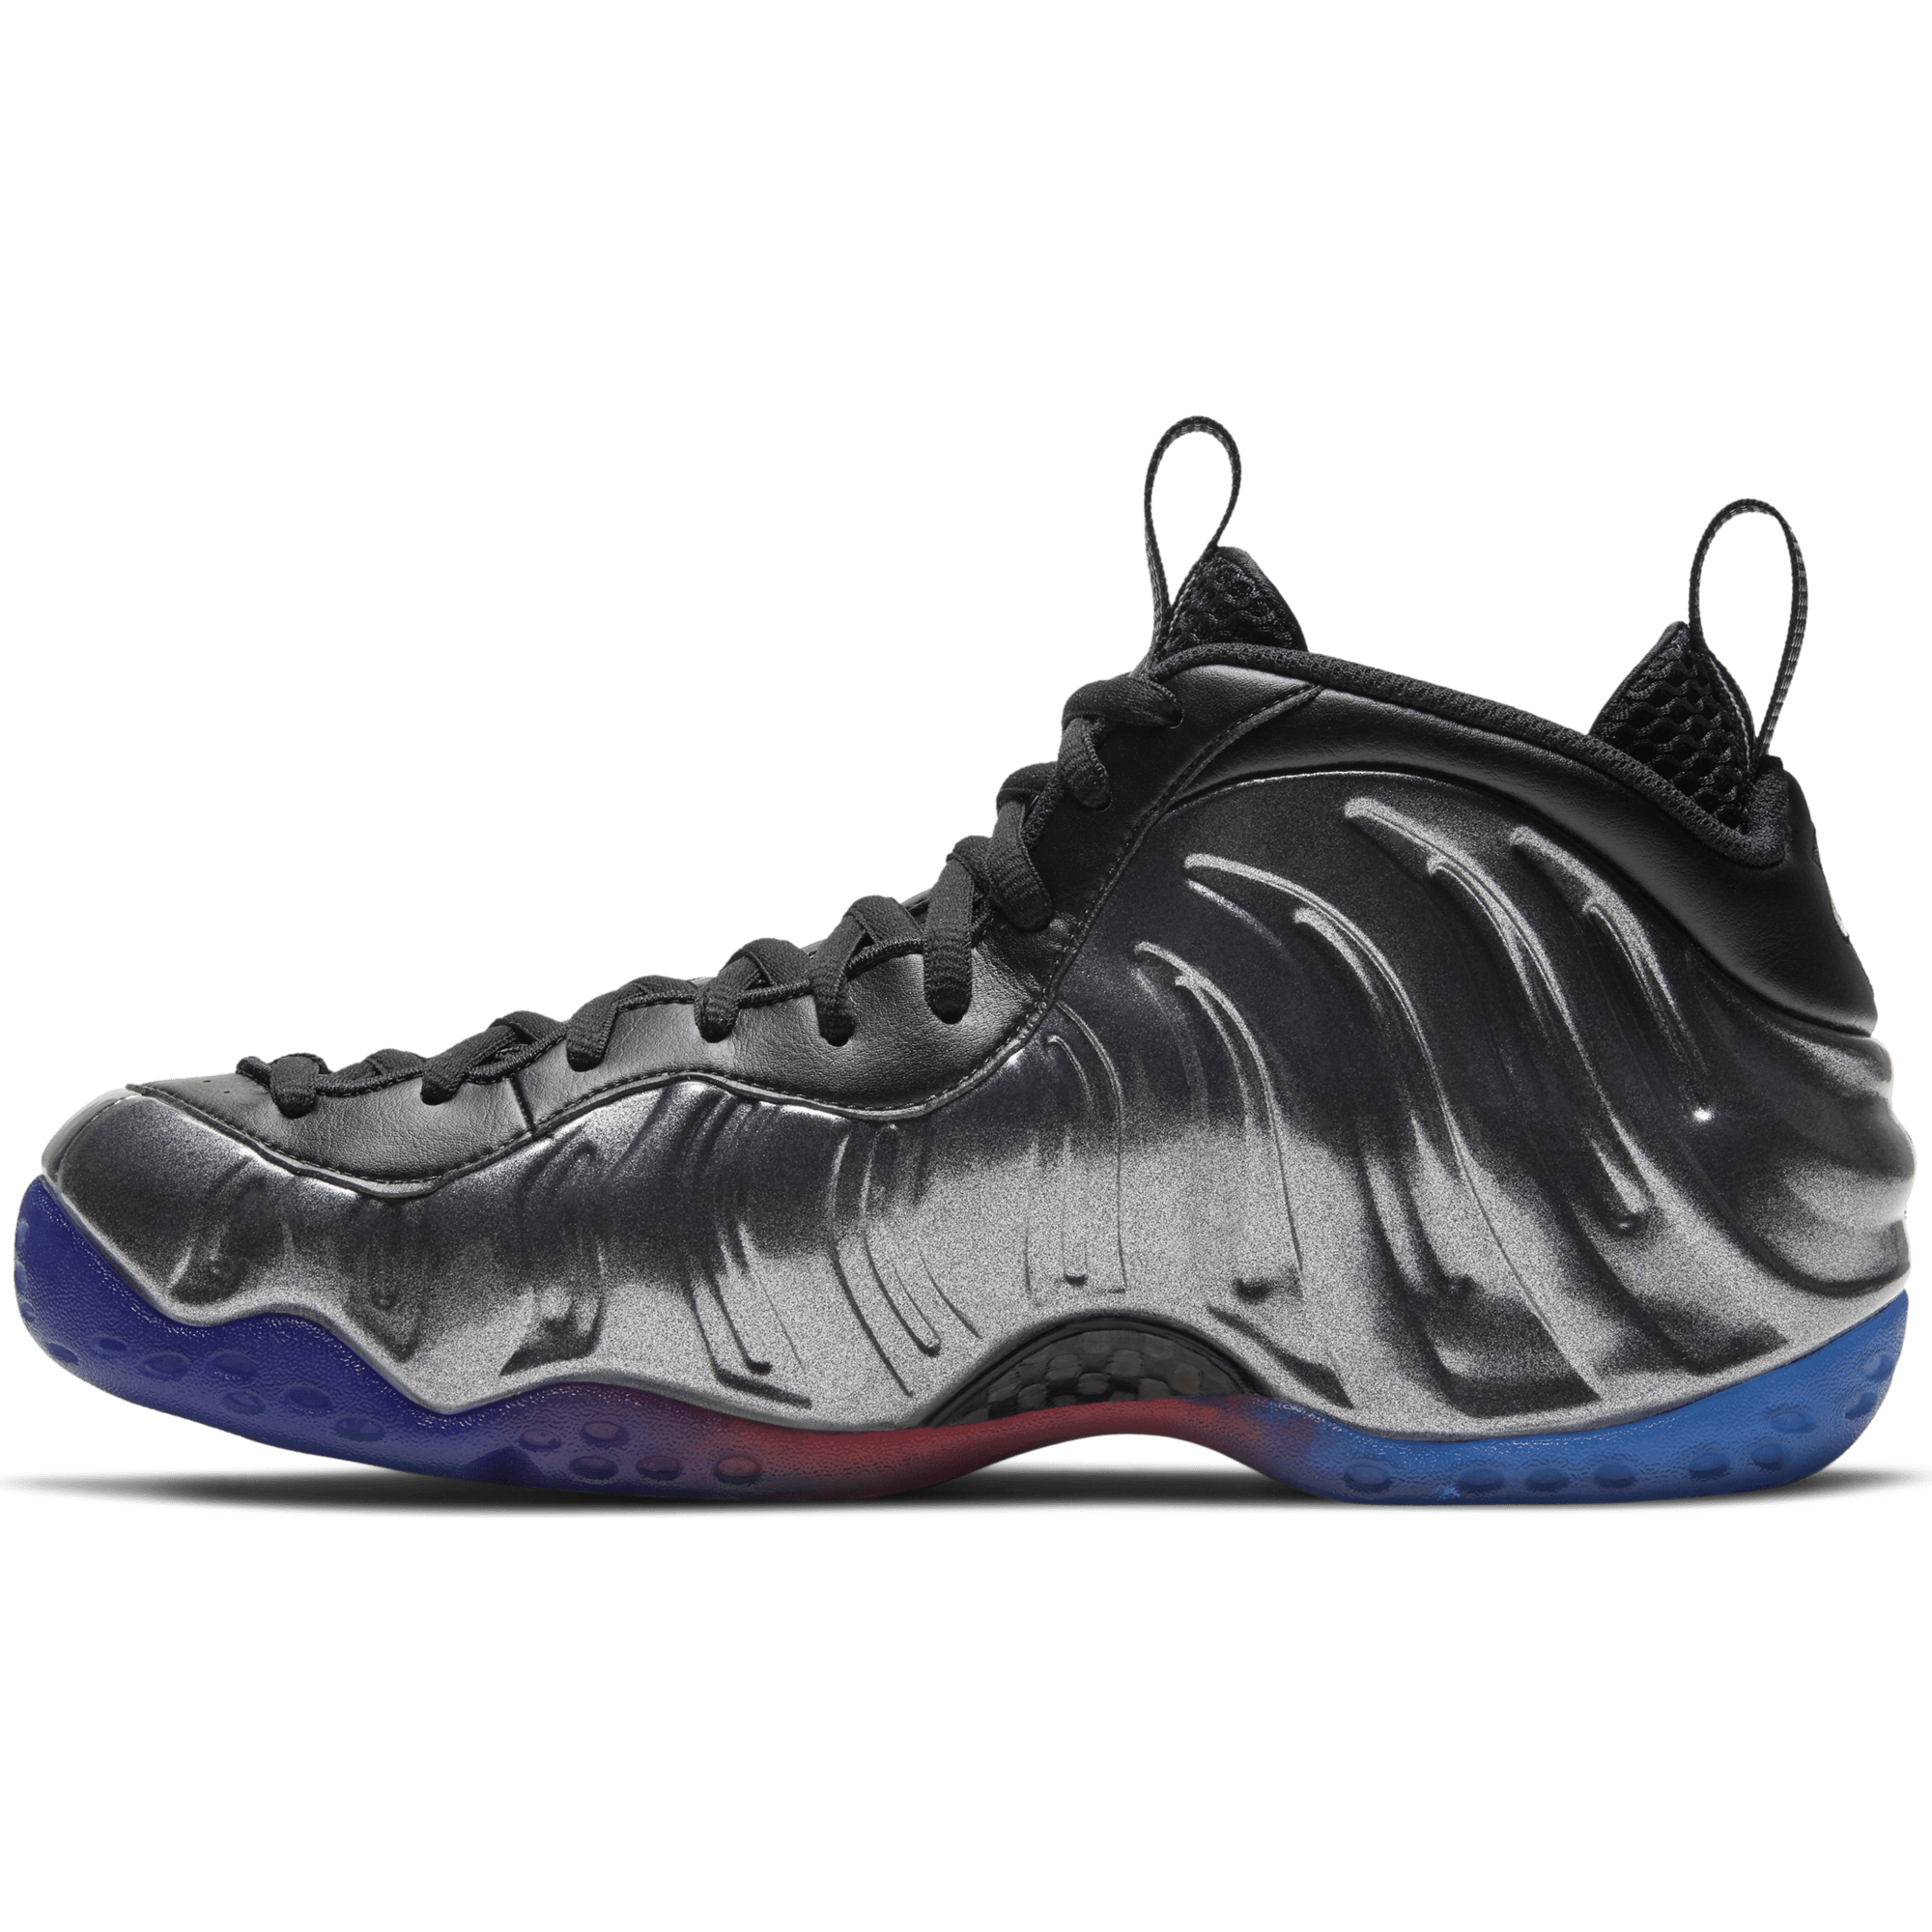 Nike FOOTWEAR Nike Air Foamposite One - Men's